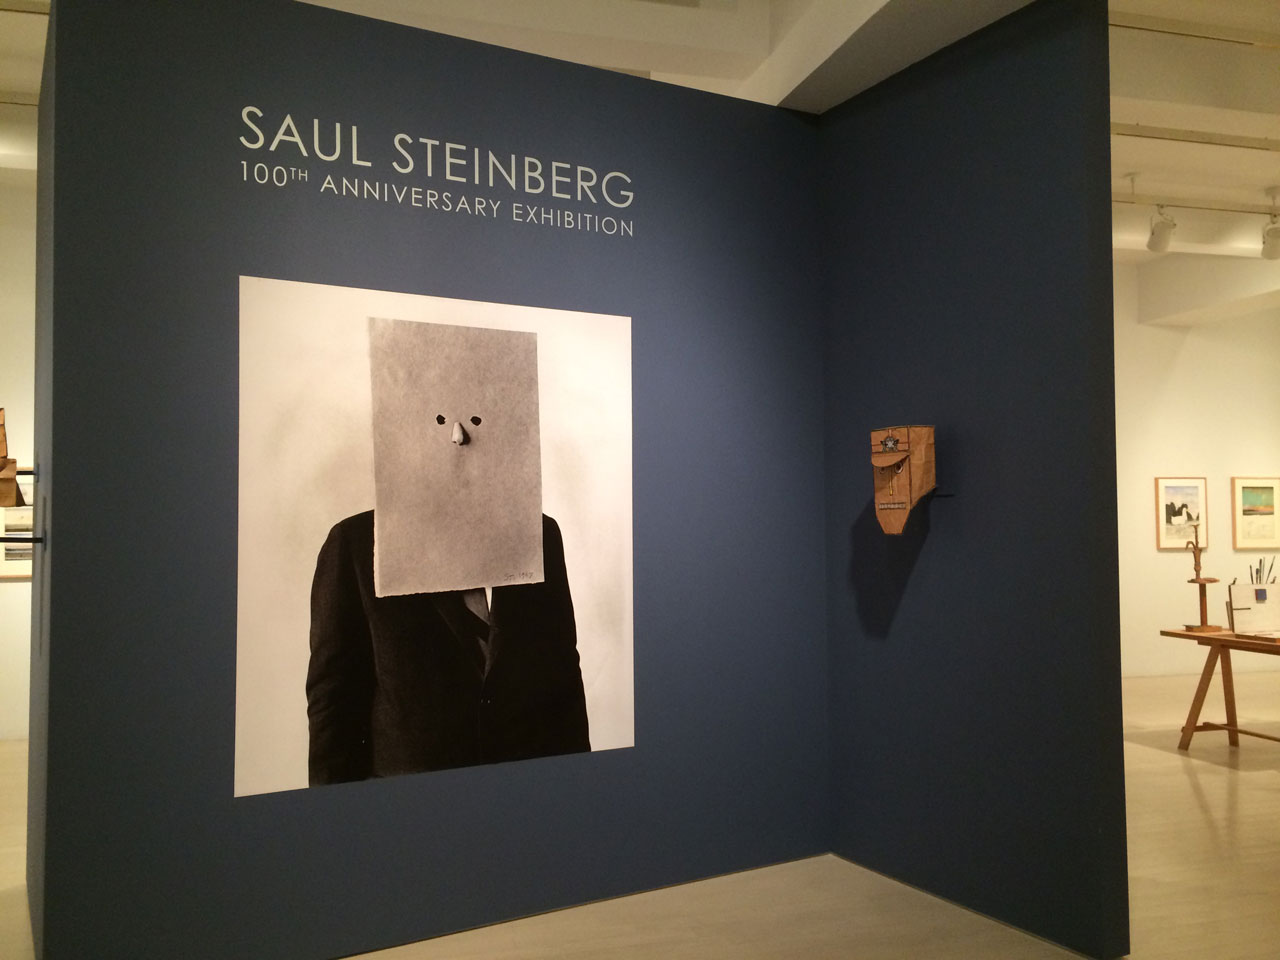 Saul Steinberg Decodes The Symbols Of Society